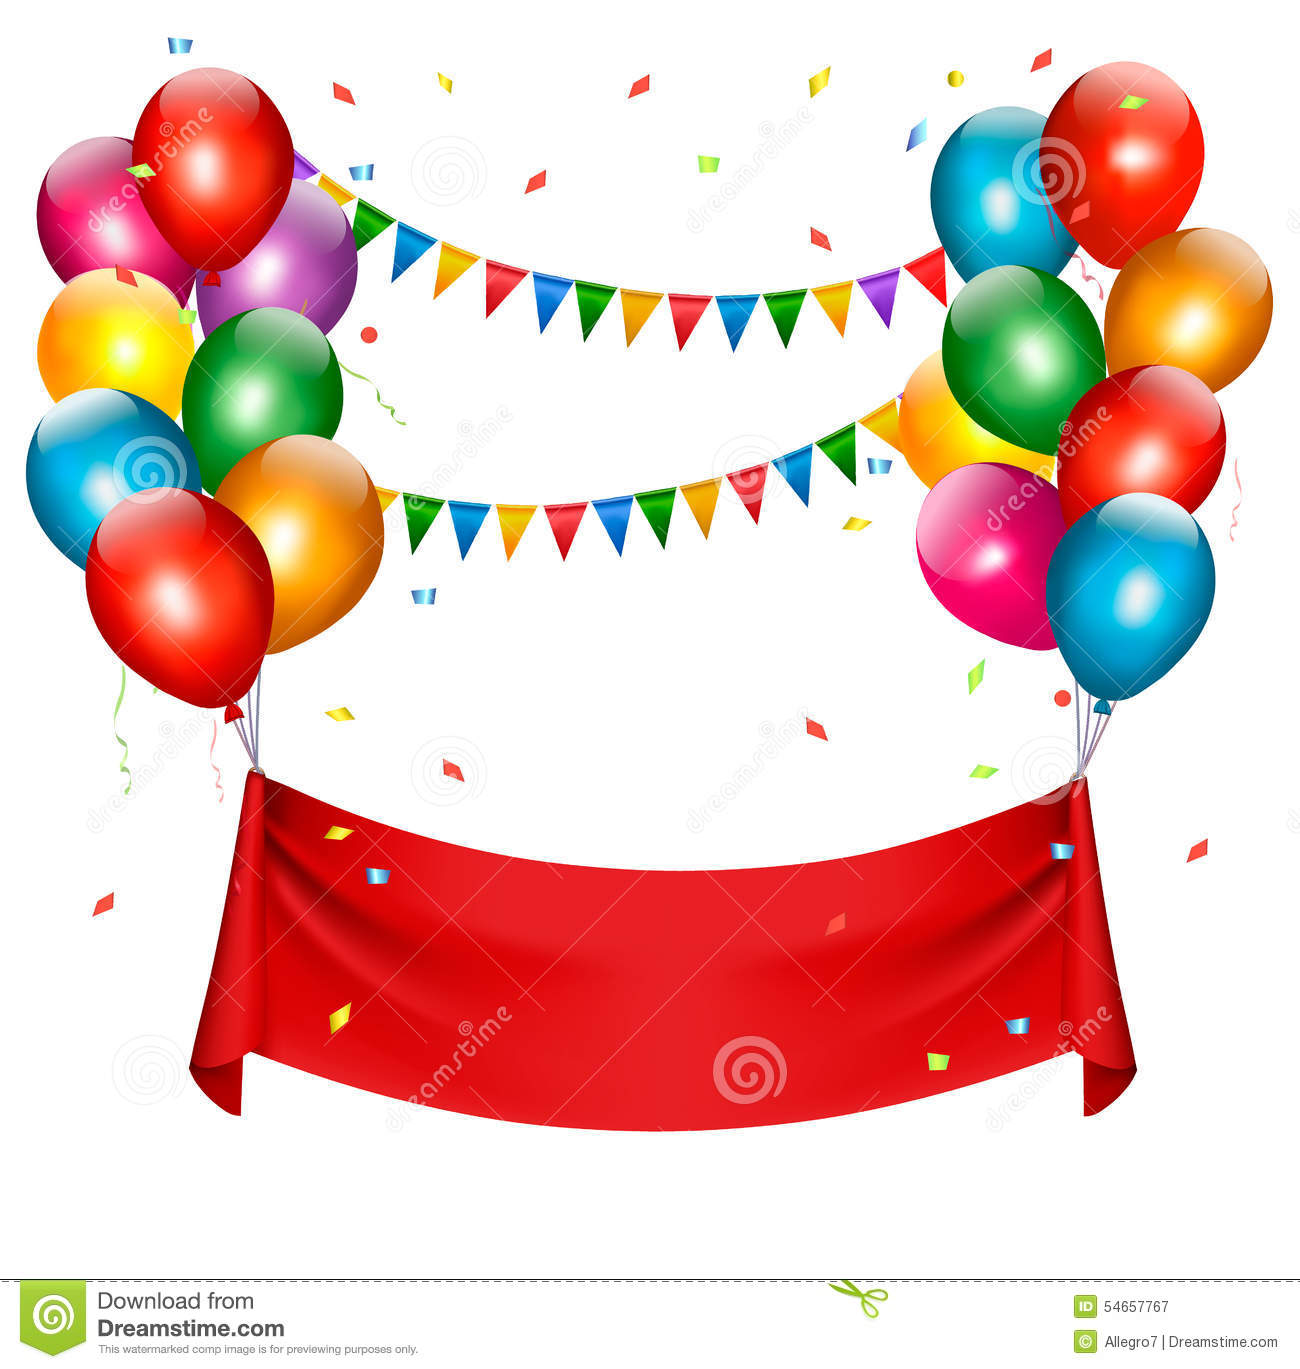 birthday banner images ; holiday-birthday-banner-balloons-vector-54657767